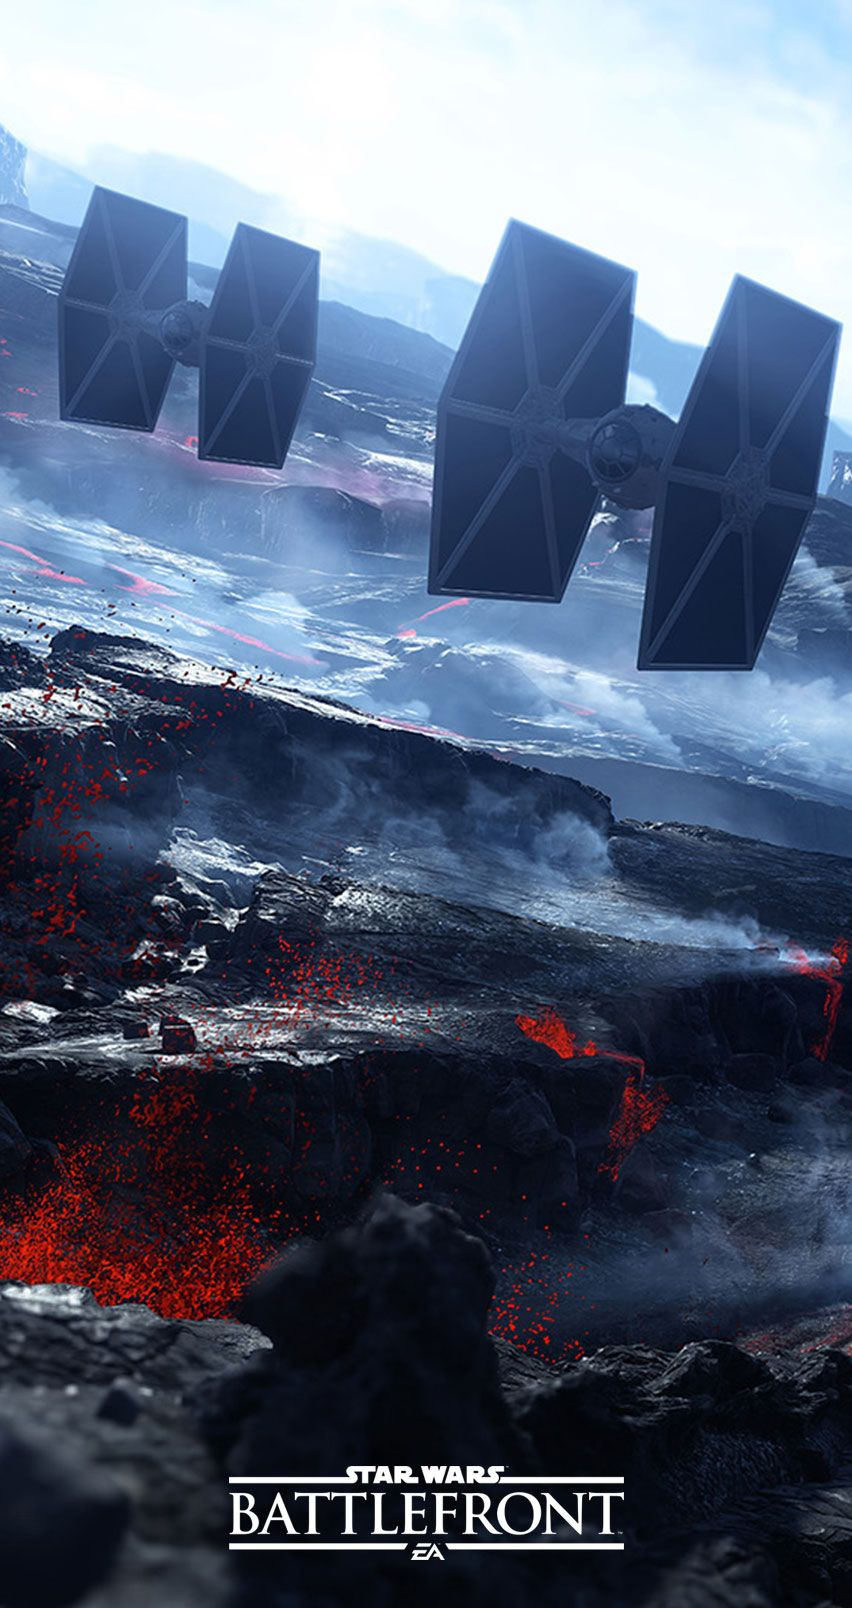 Star Wars Android Wallpapers - Top Free Star Wars Android